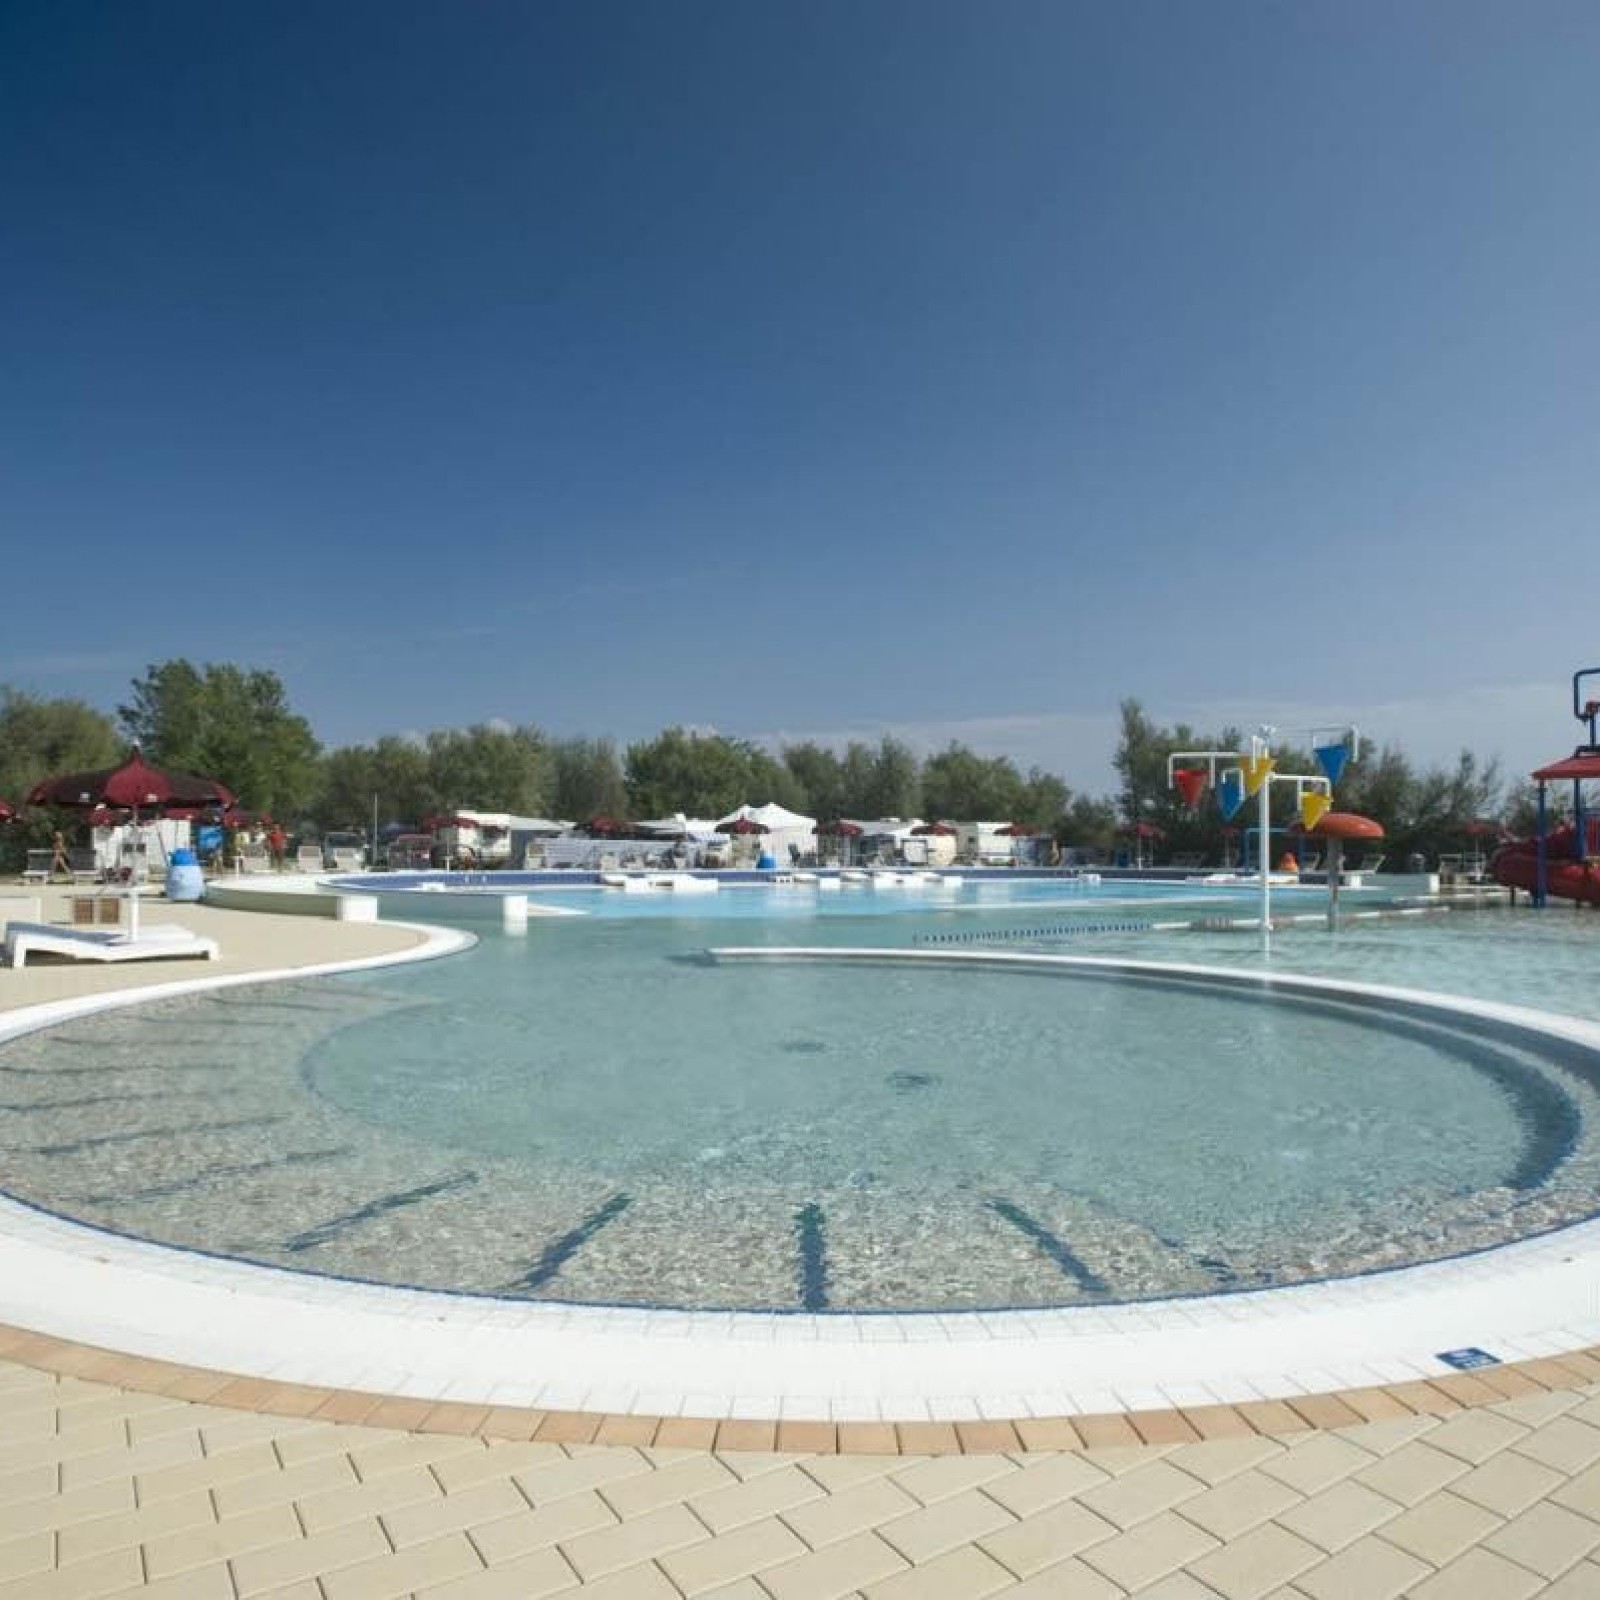 Camping And Hotel Pools